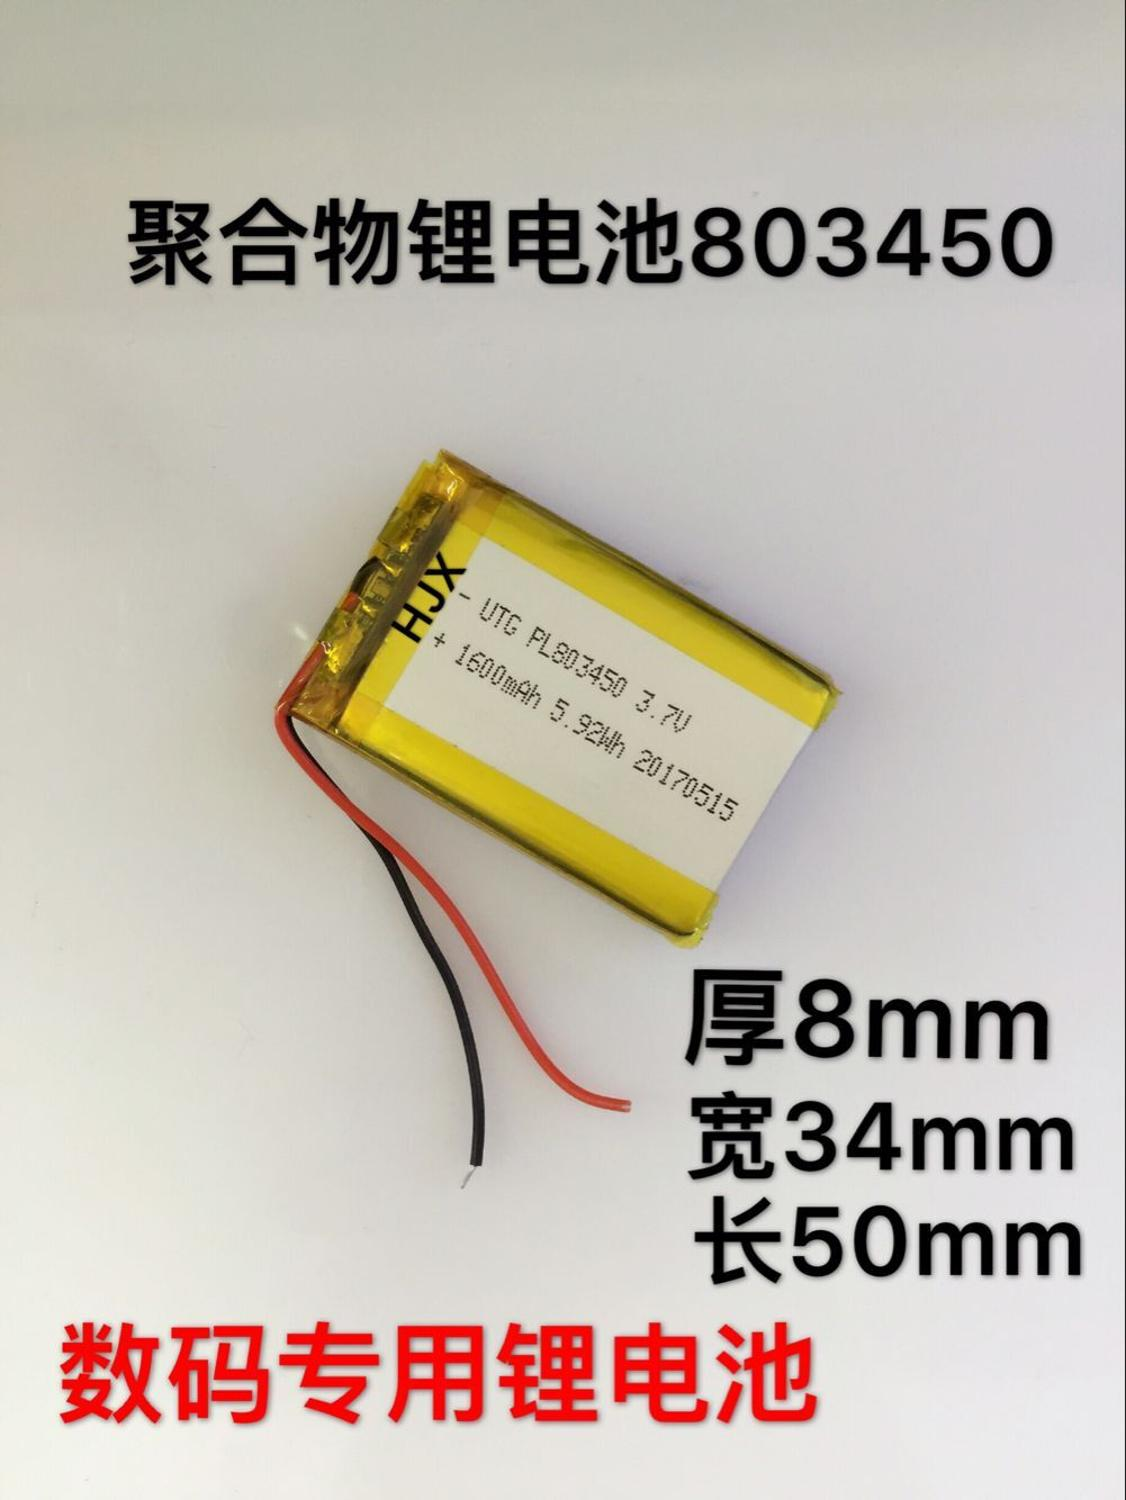 Polymer lithium battery, 803450 early education machine, localizer, medical equipment, GPS navigator, special lithium battery